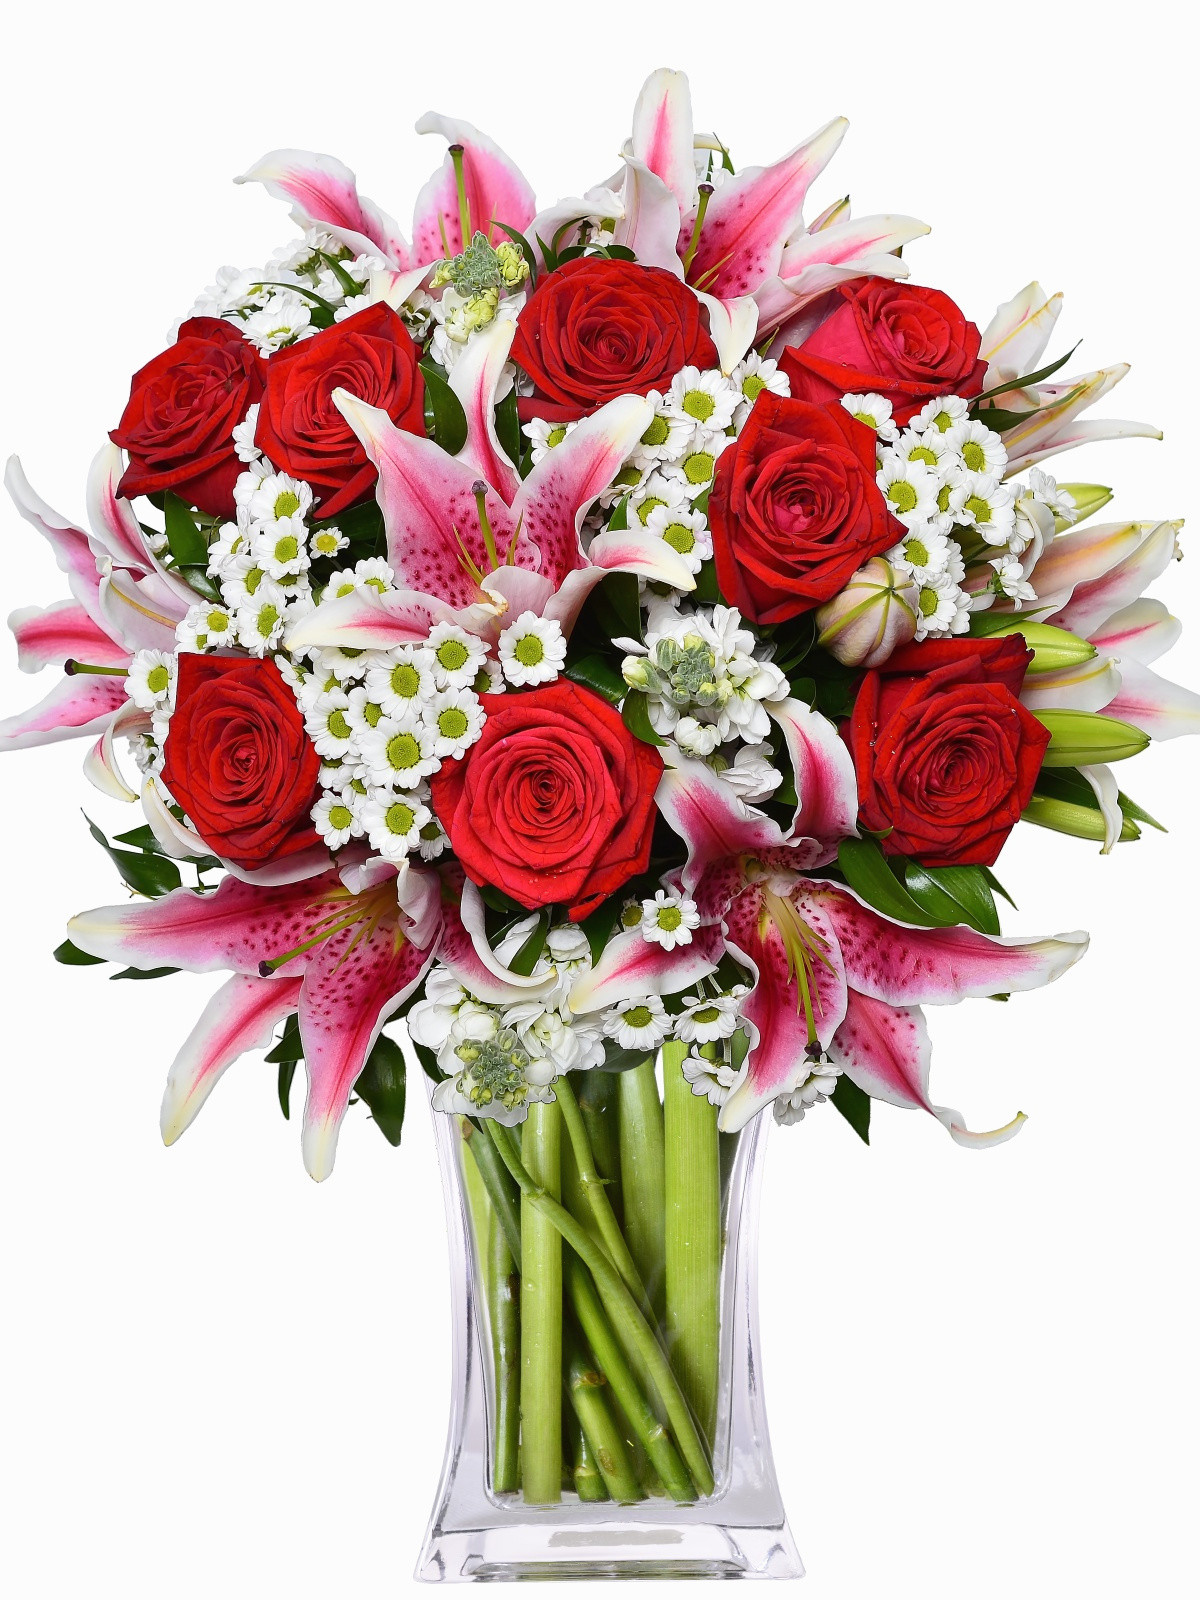 Buy Flowers for Delivery Elegant 5 Fresh How Much Does It Cost to Send Flowers